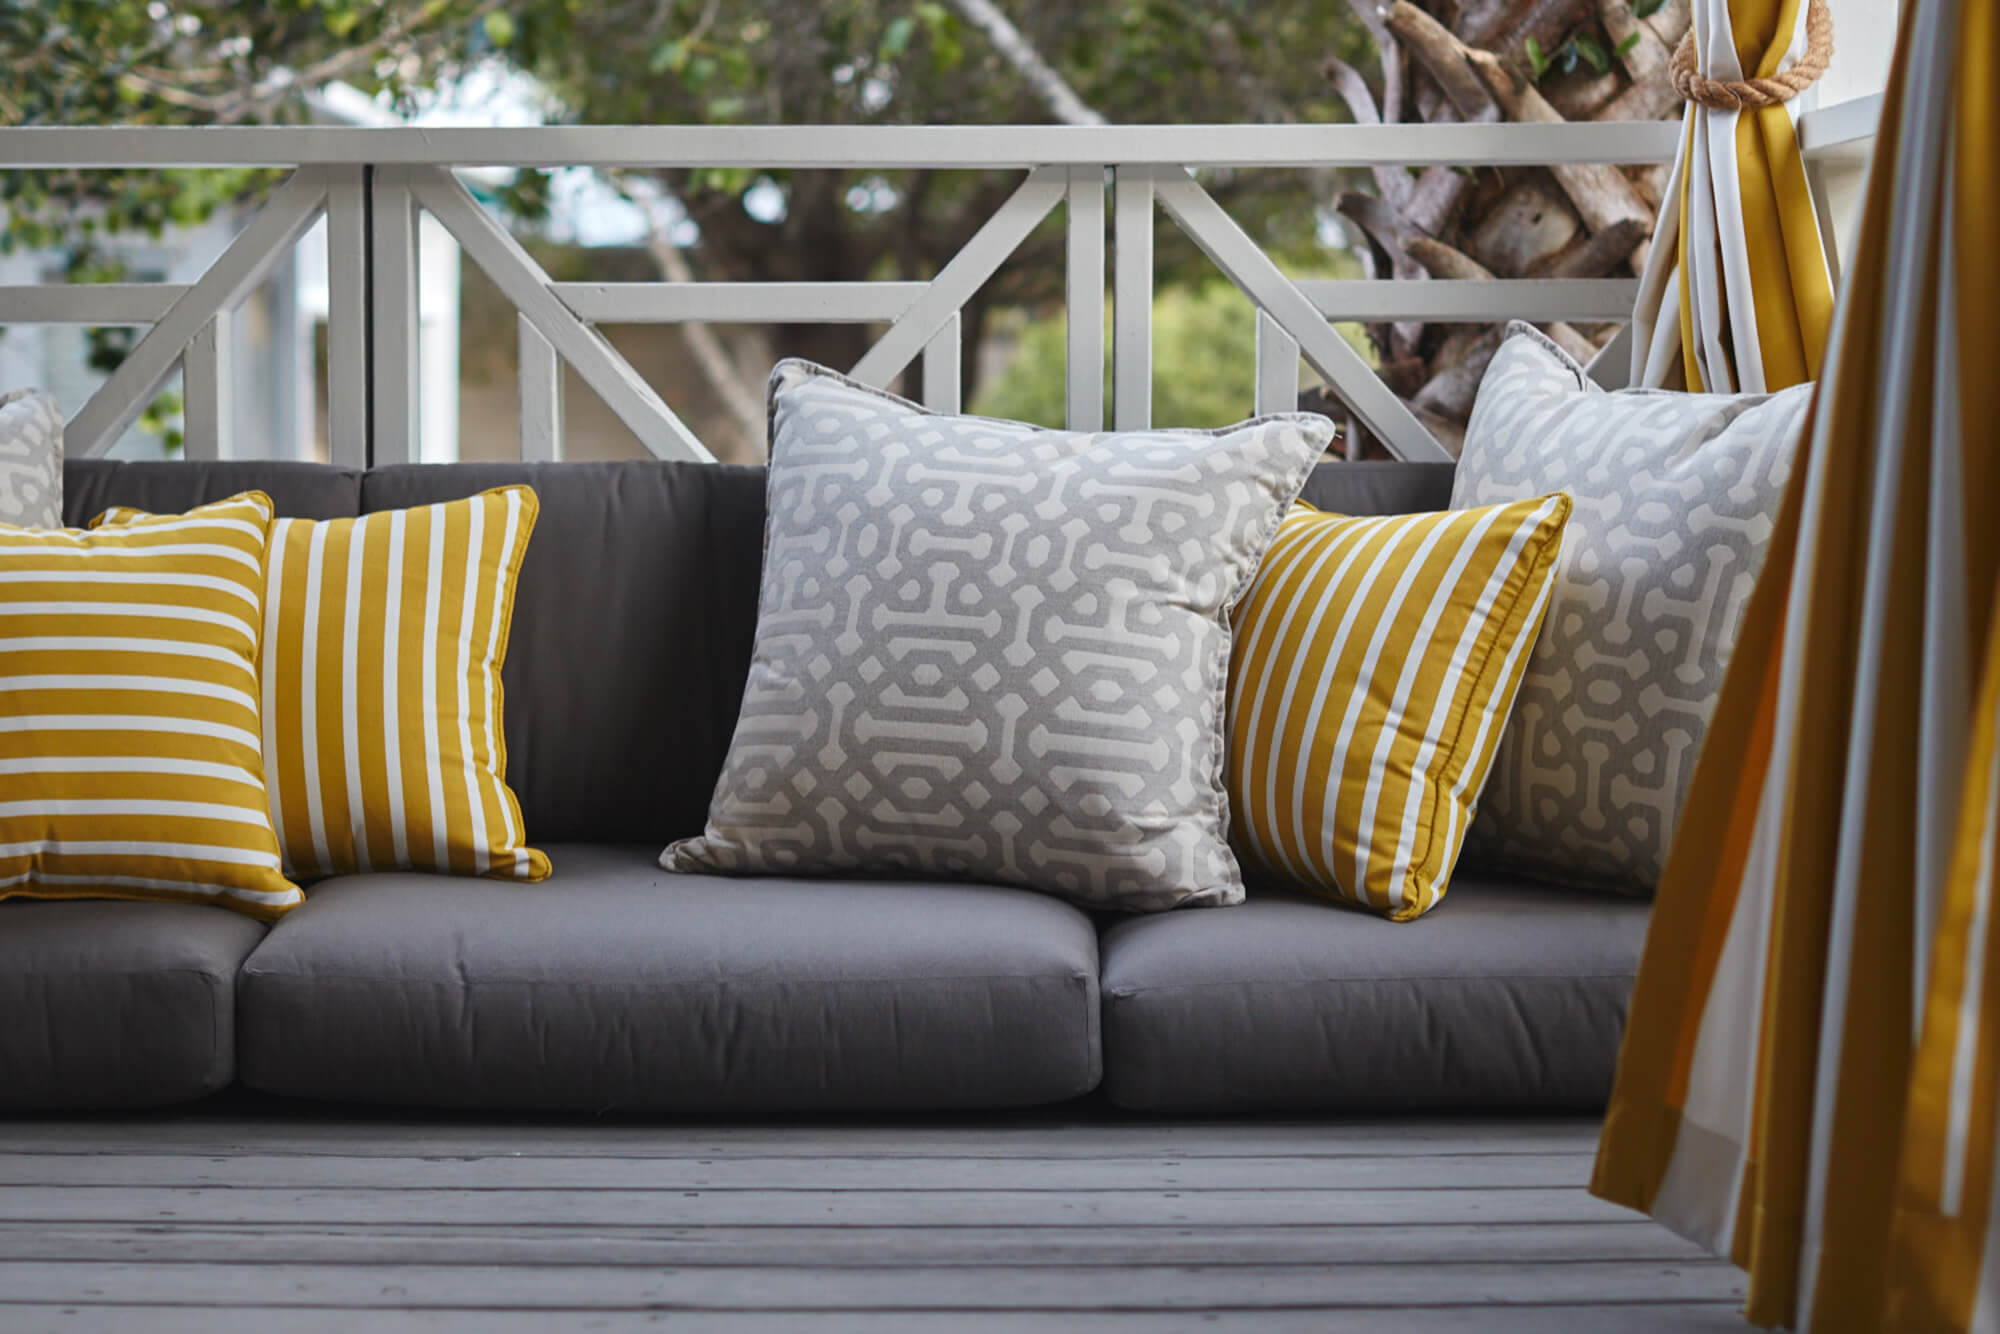 Grey Outdoor Cushions With Yellow And Decorative Pillows Dry Sofa